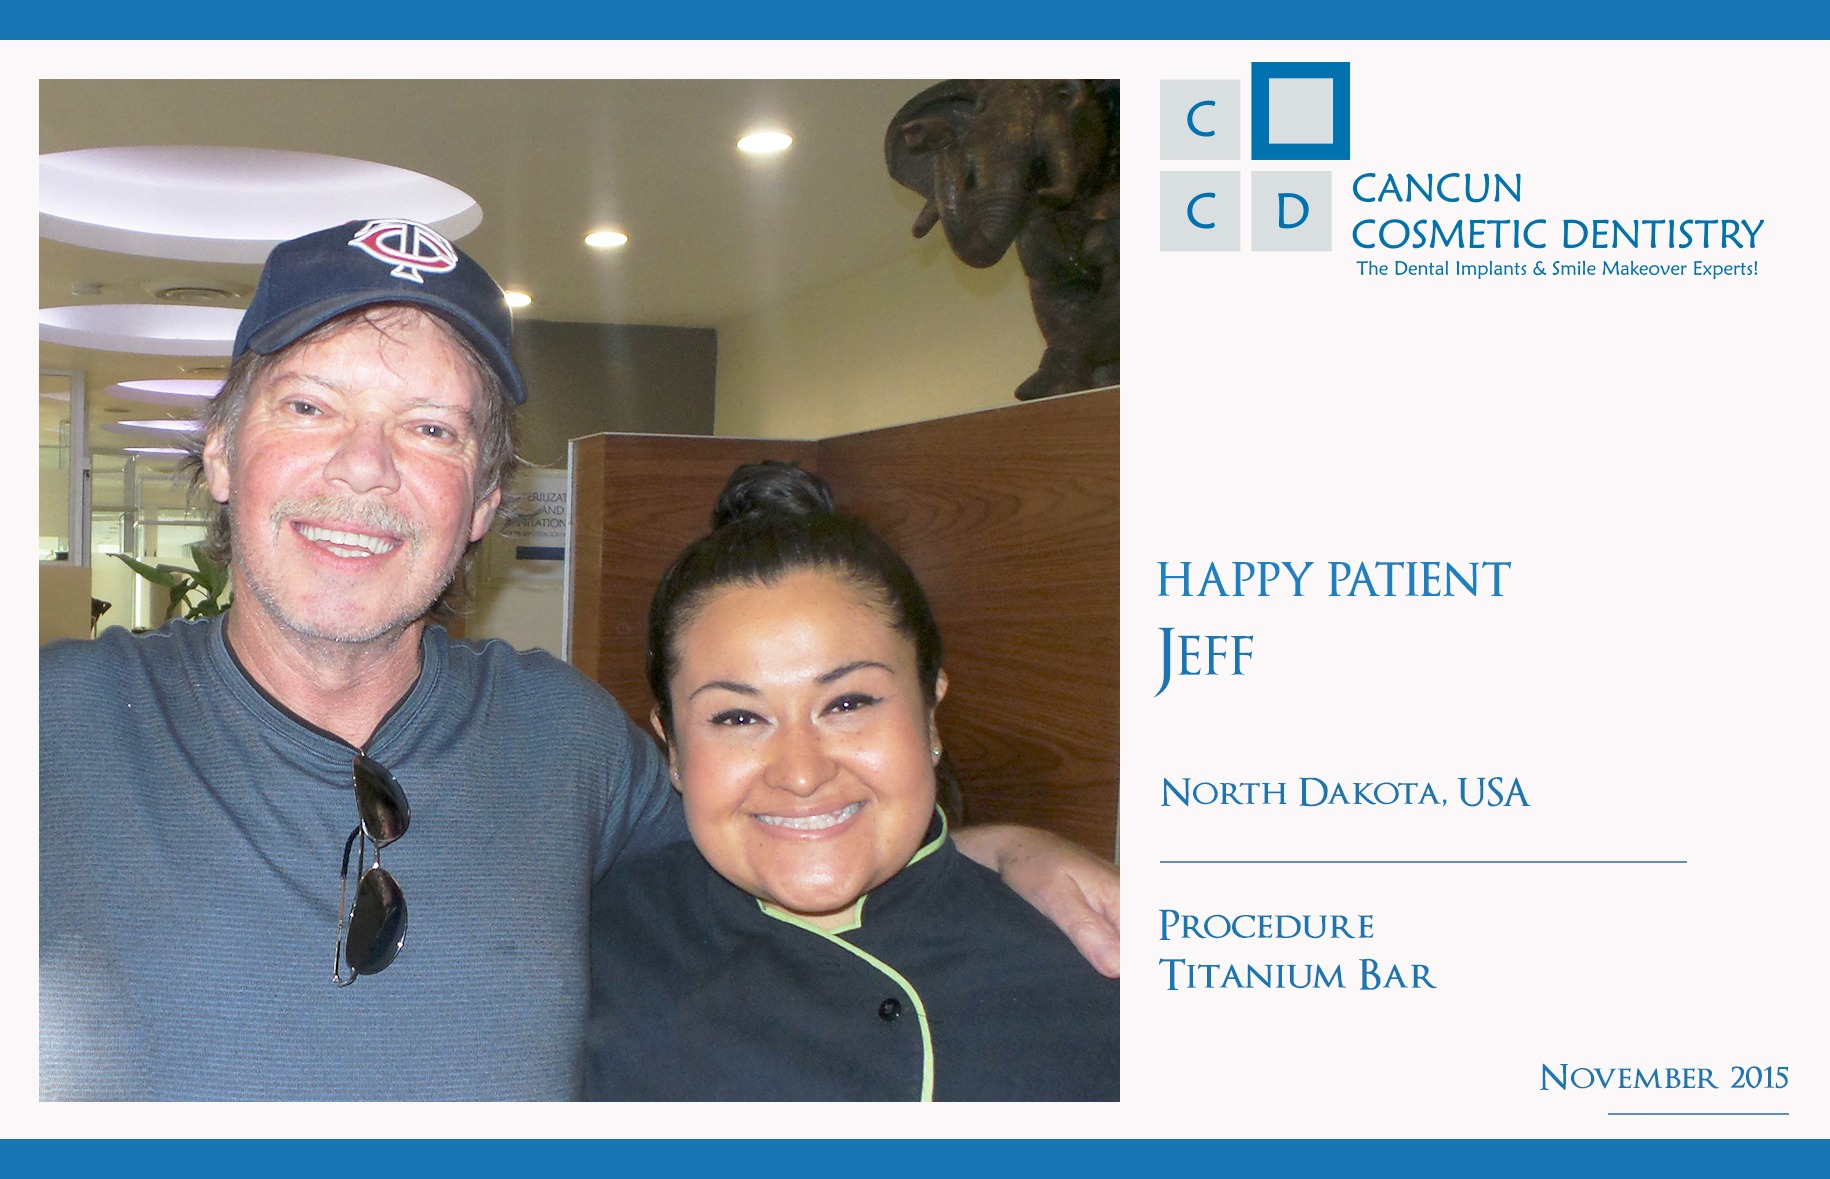 Good review of dentists in Cancun Cosmetic Dentistry